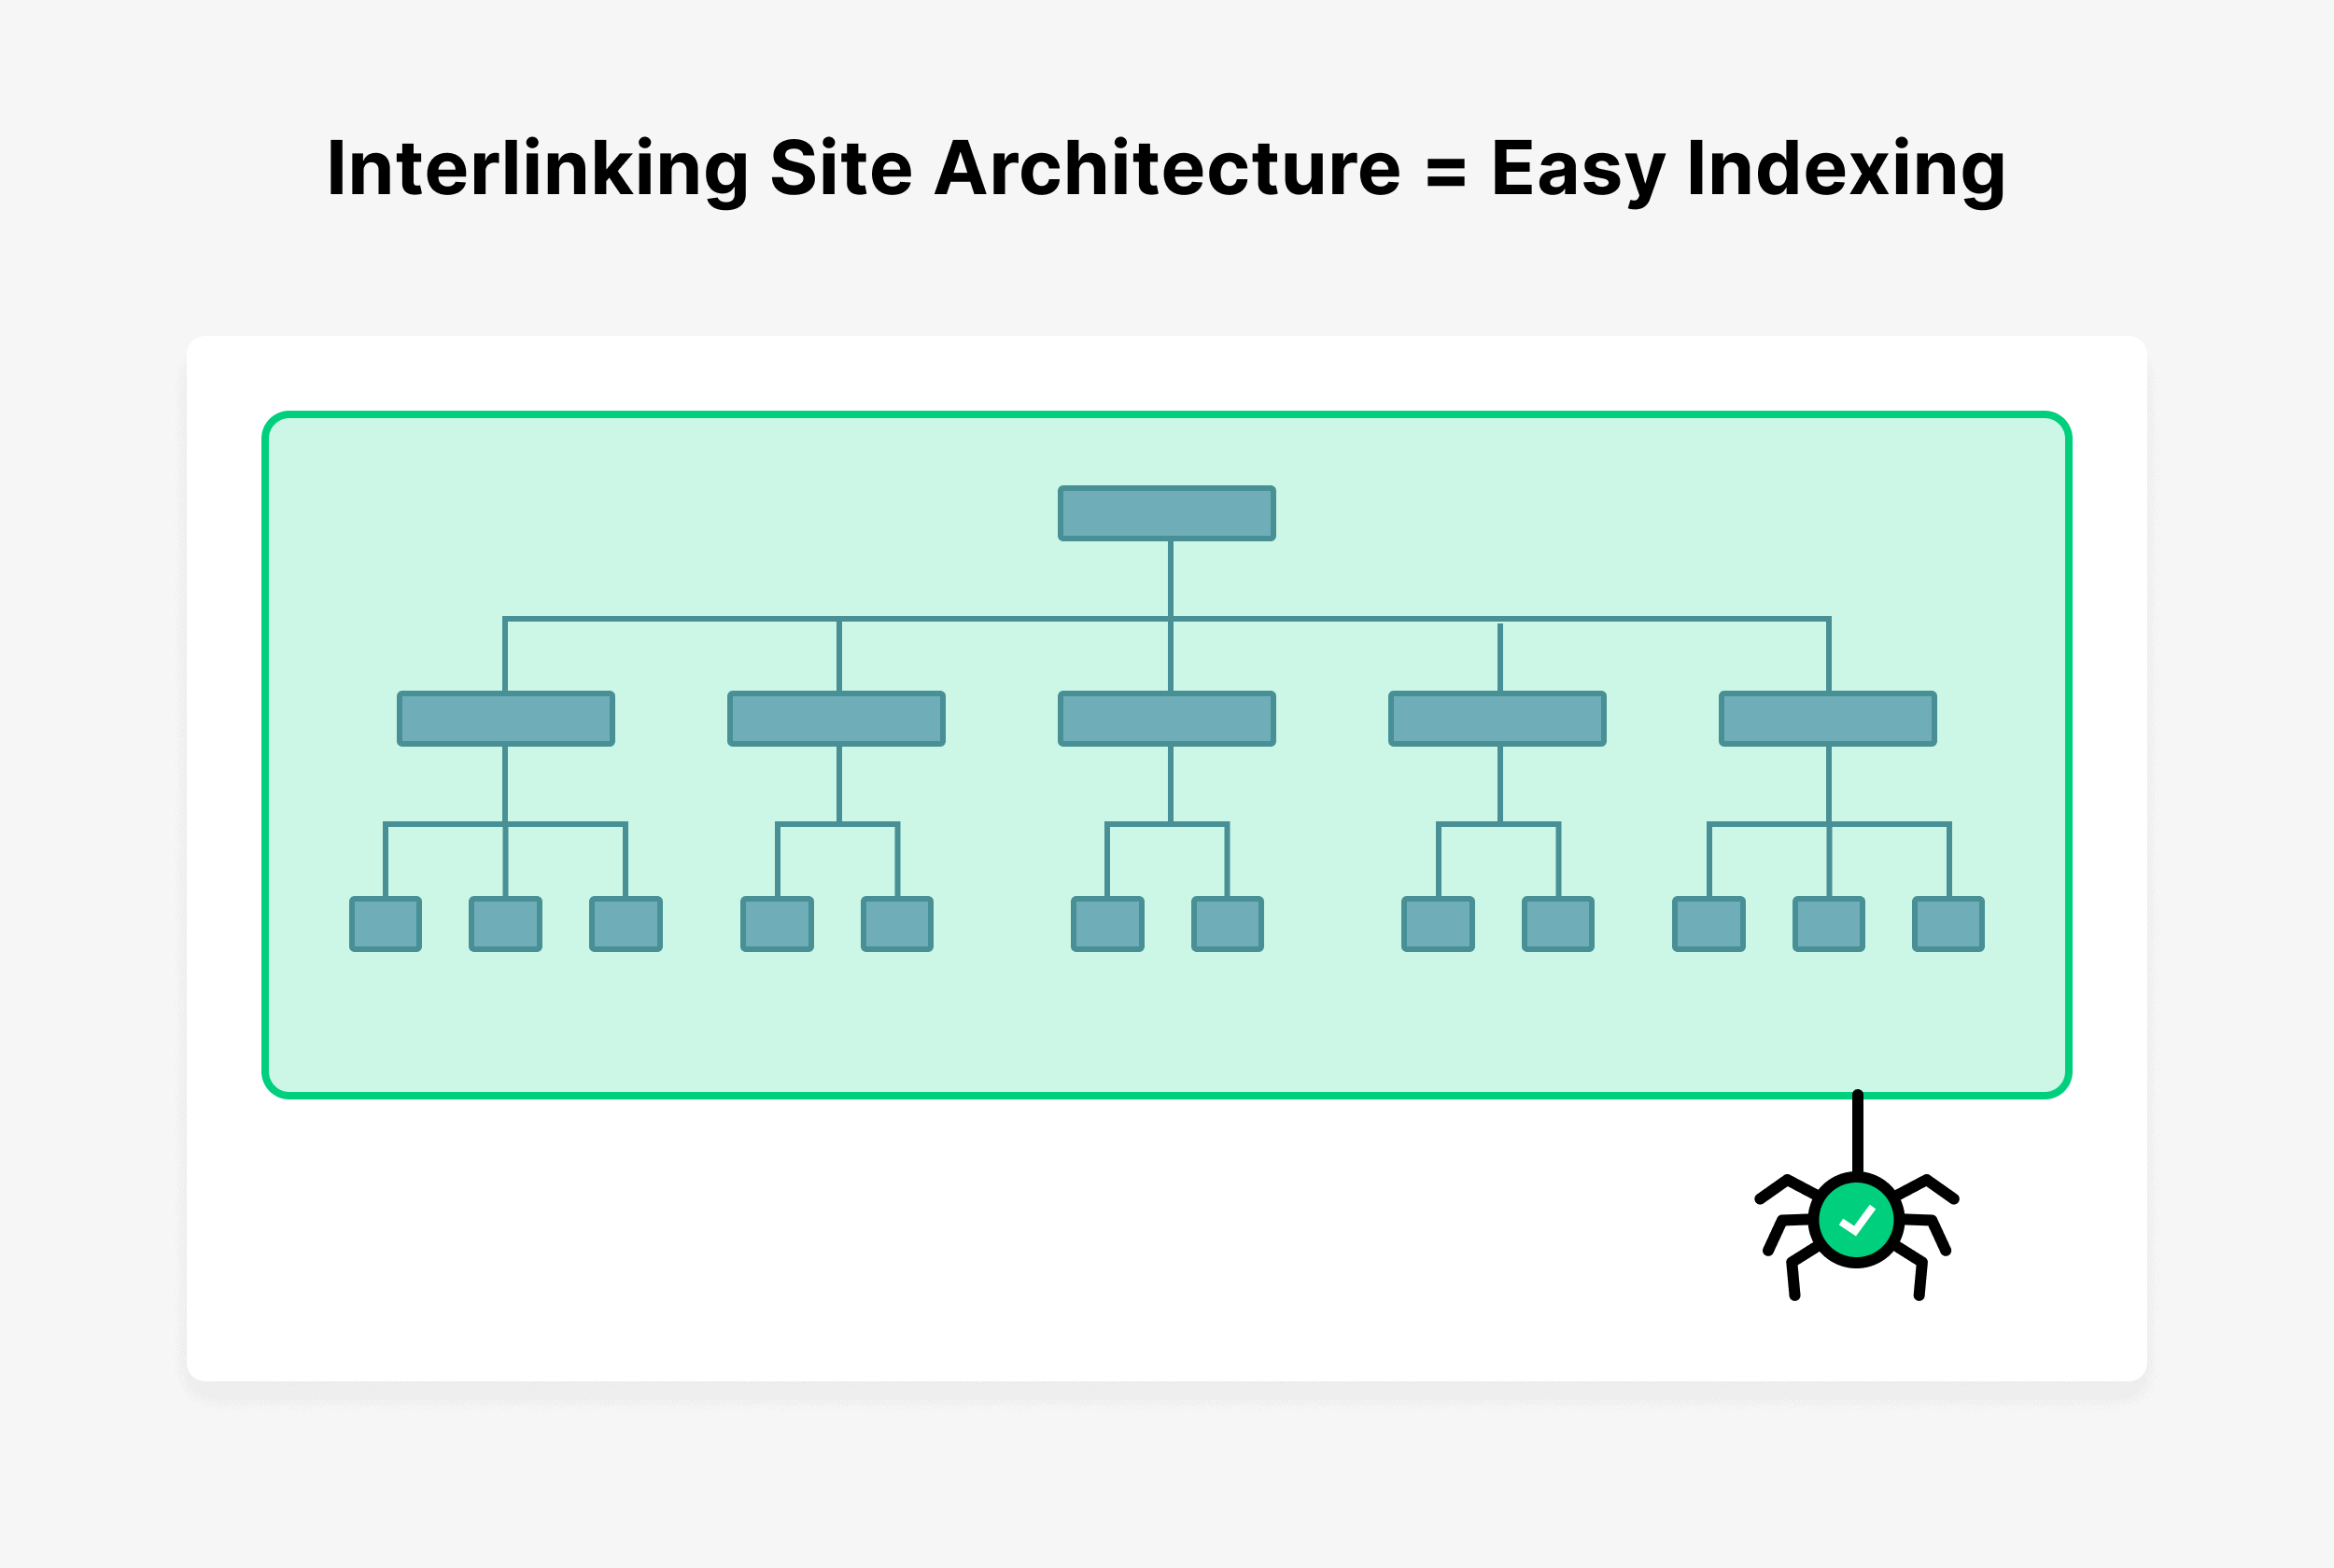 Interlinking site architecture = Easy indexing